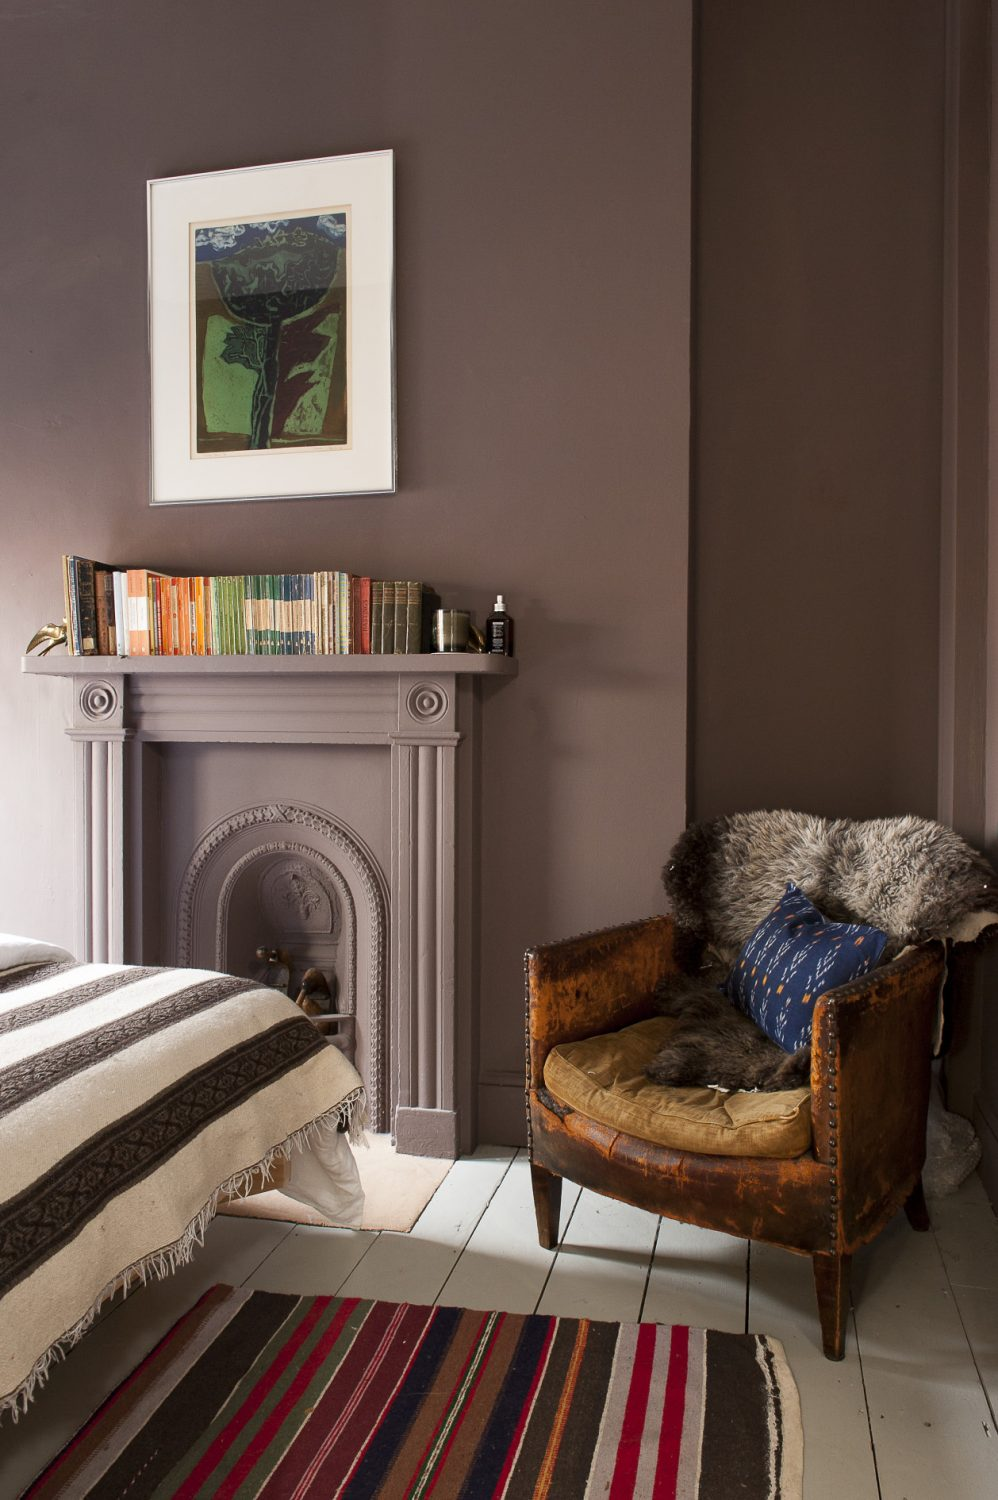 Classic novels sit on a the mantelpiece in the bedroom